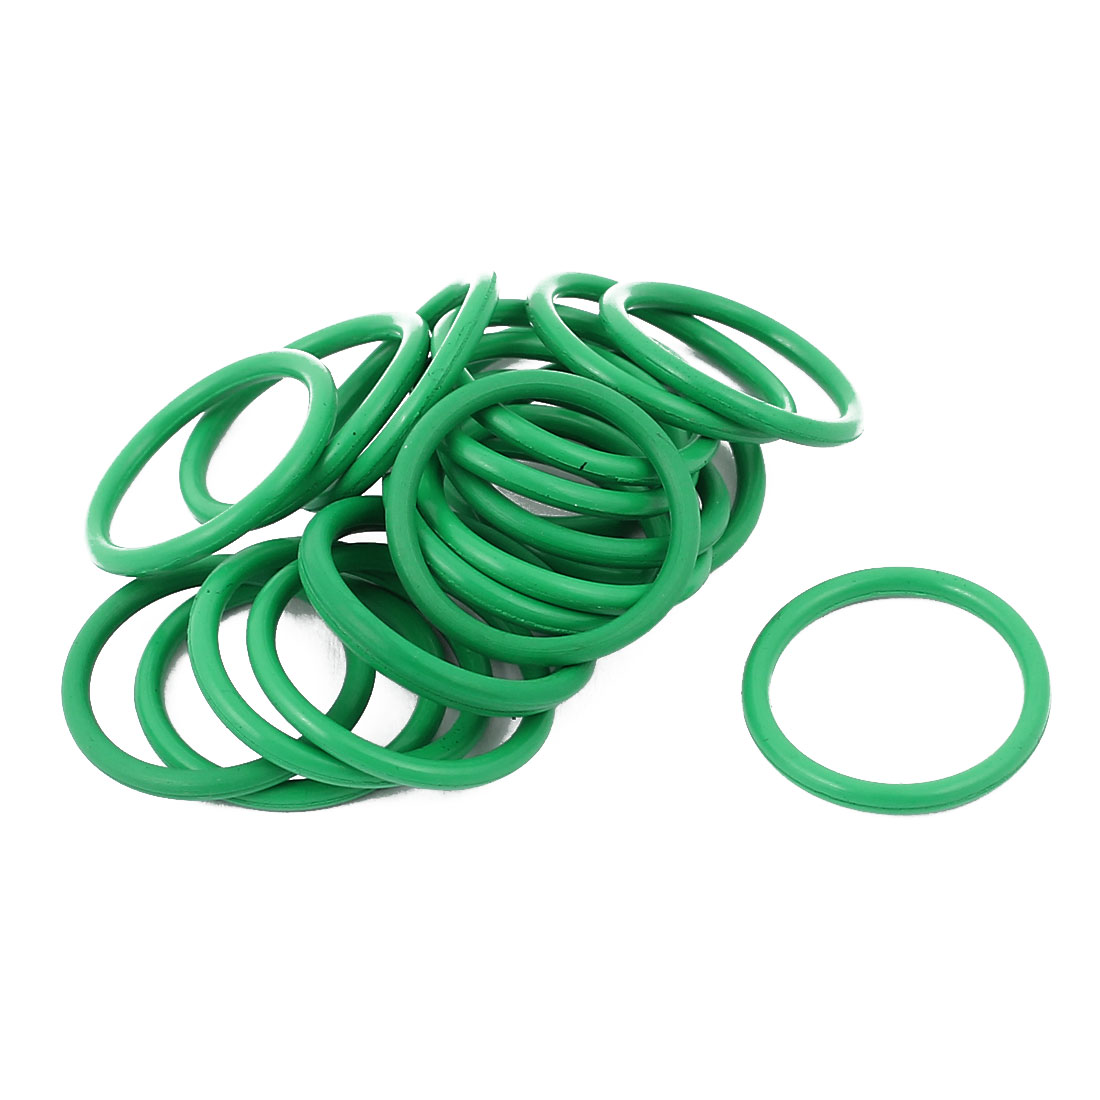 20pcs 1.5mm Thick Heat Resistant Mini Green O-Ring Rubber Sealing Ring 16mm OD